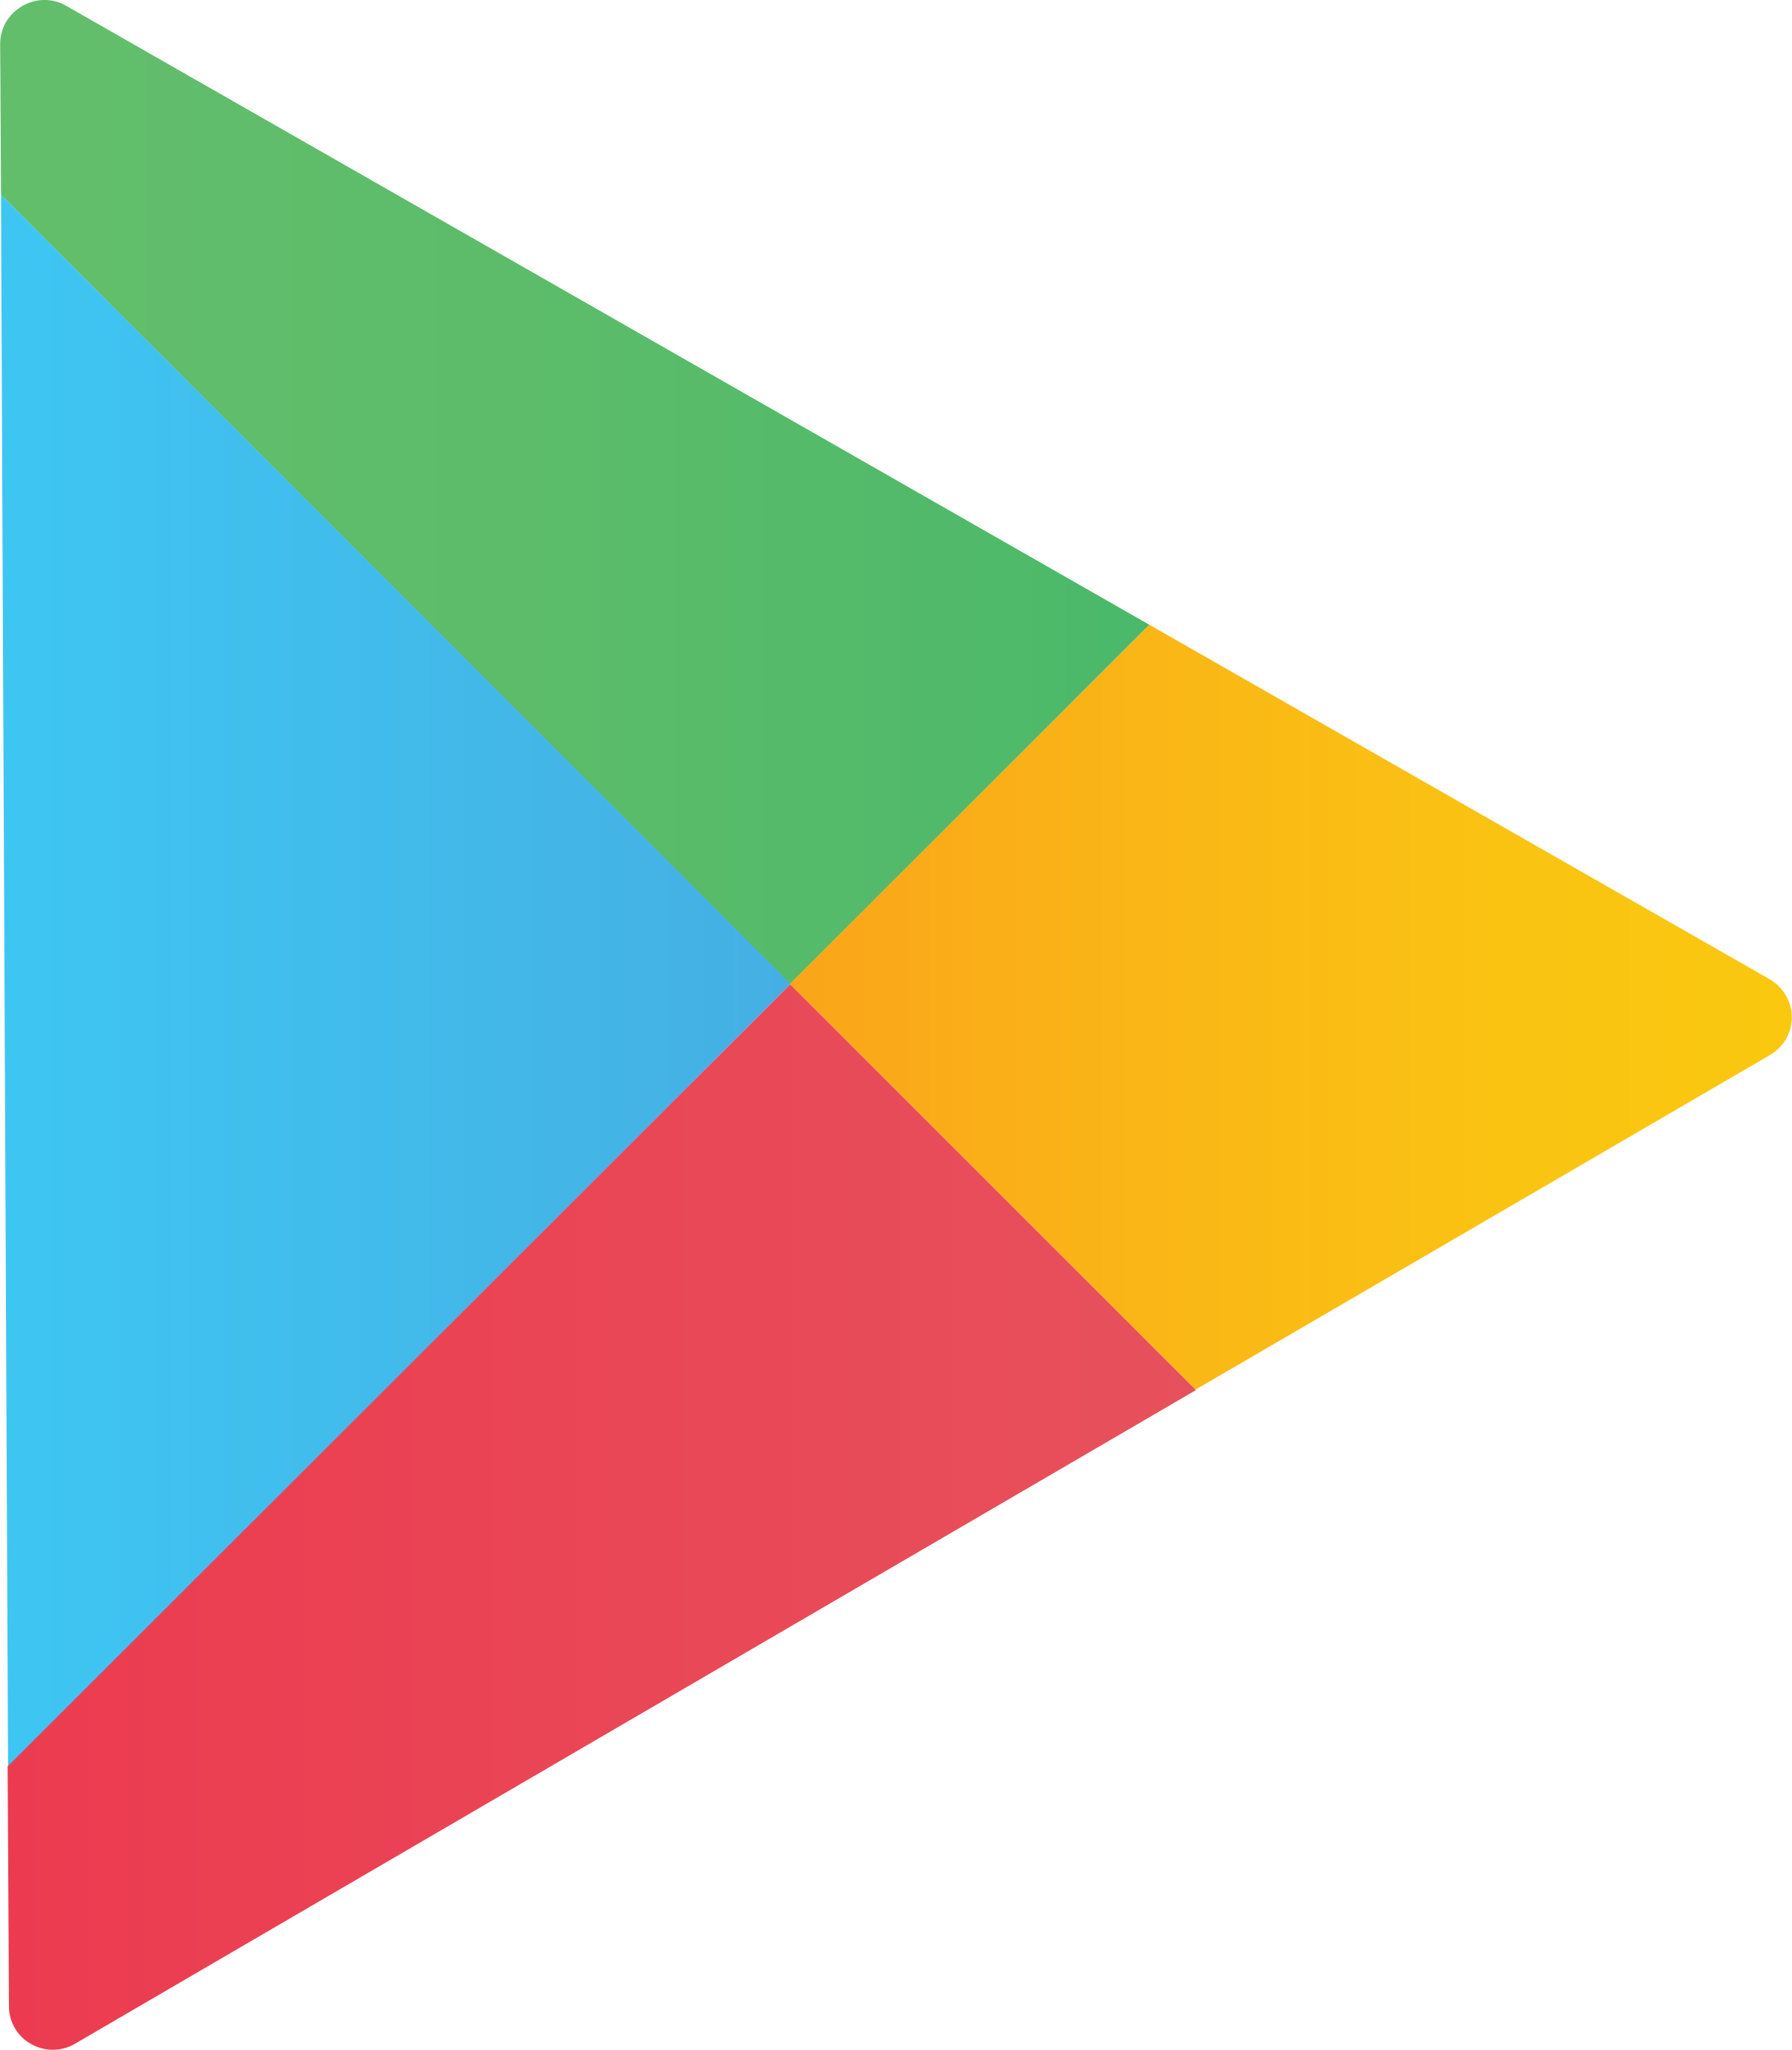 Google play store png. Logo transparent svg vector